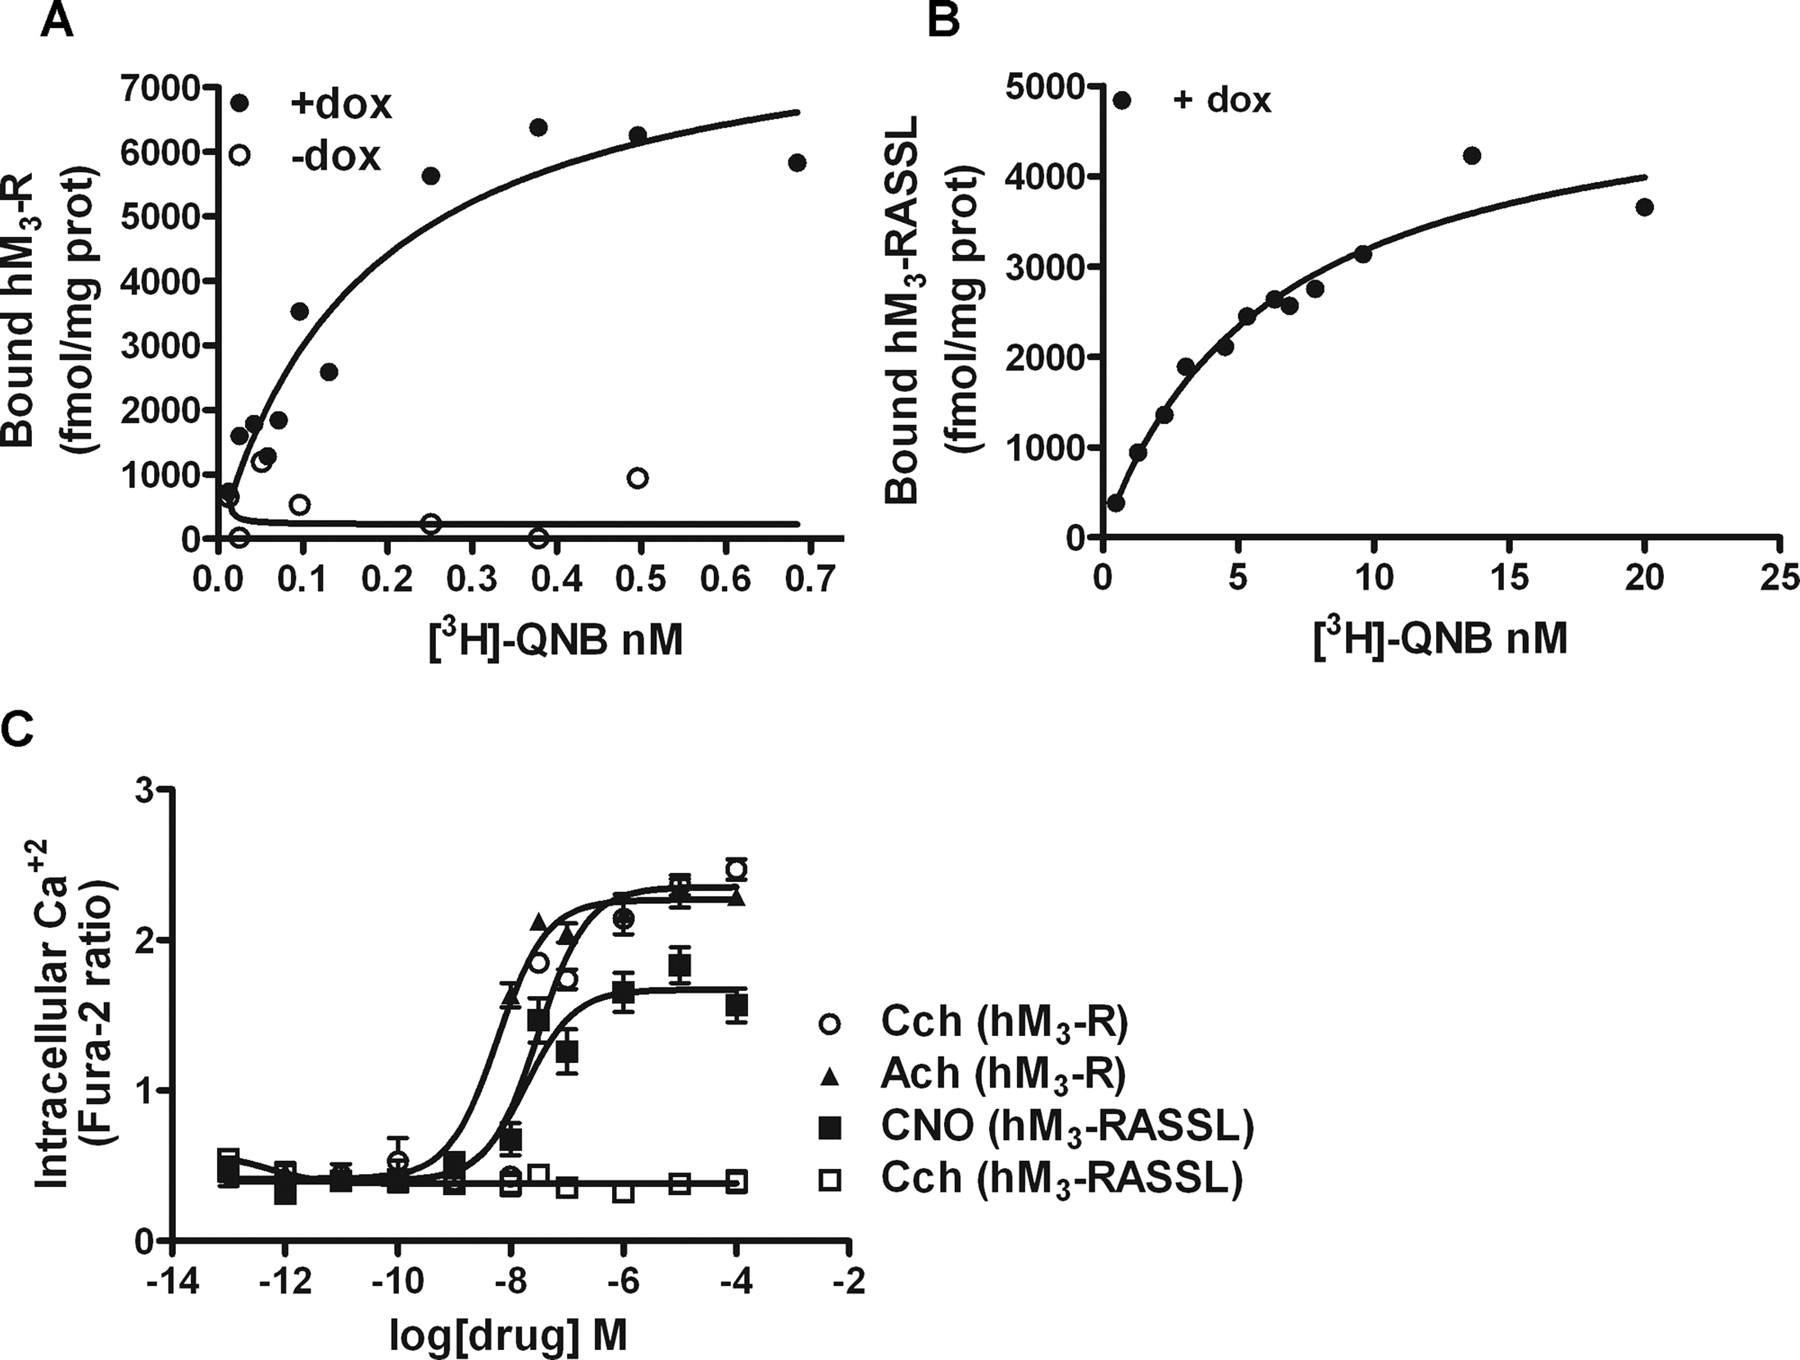 binding of qnb and atropine to muscarinic acetylcholine Binding to muscarinic acetylcholine receptors the species  specific [3h]qnb  binding was not affected by parathion and paraoxon  atropine-sensitive effect.